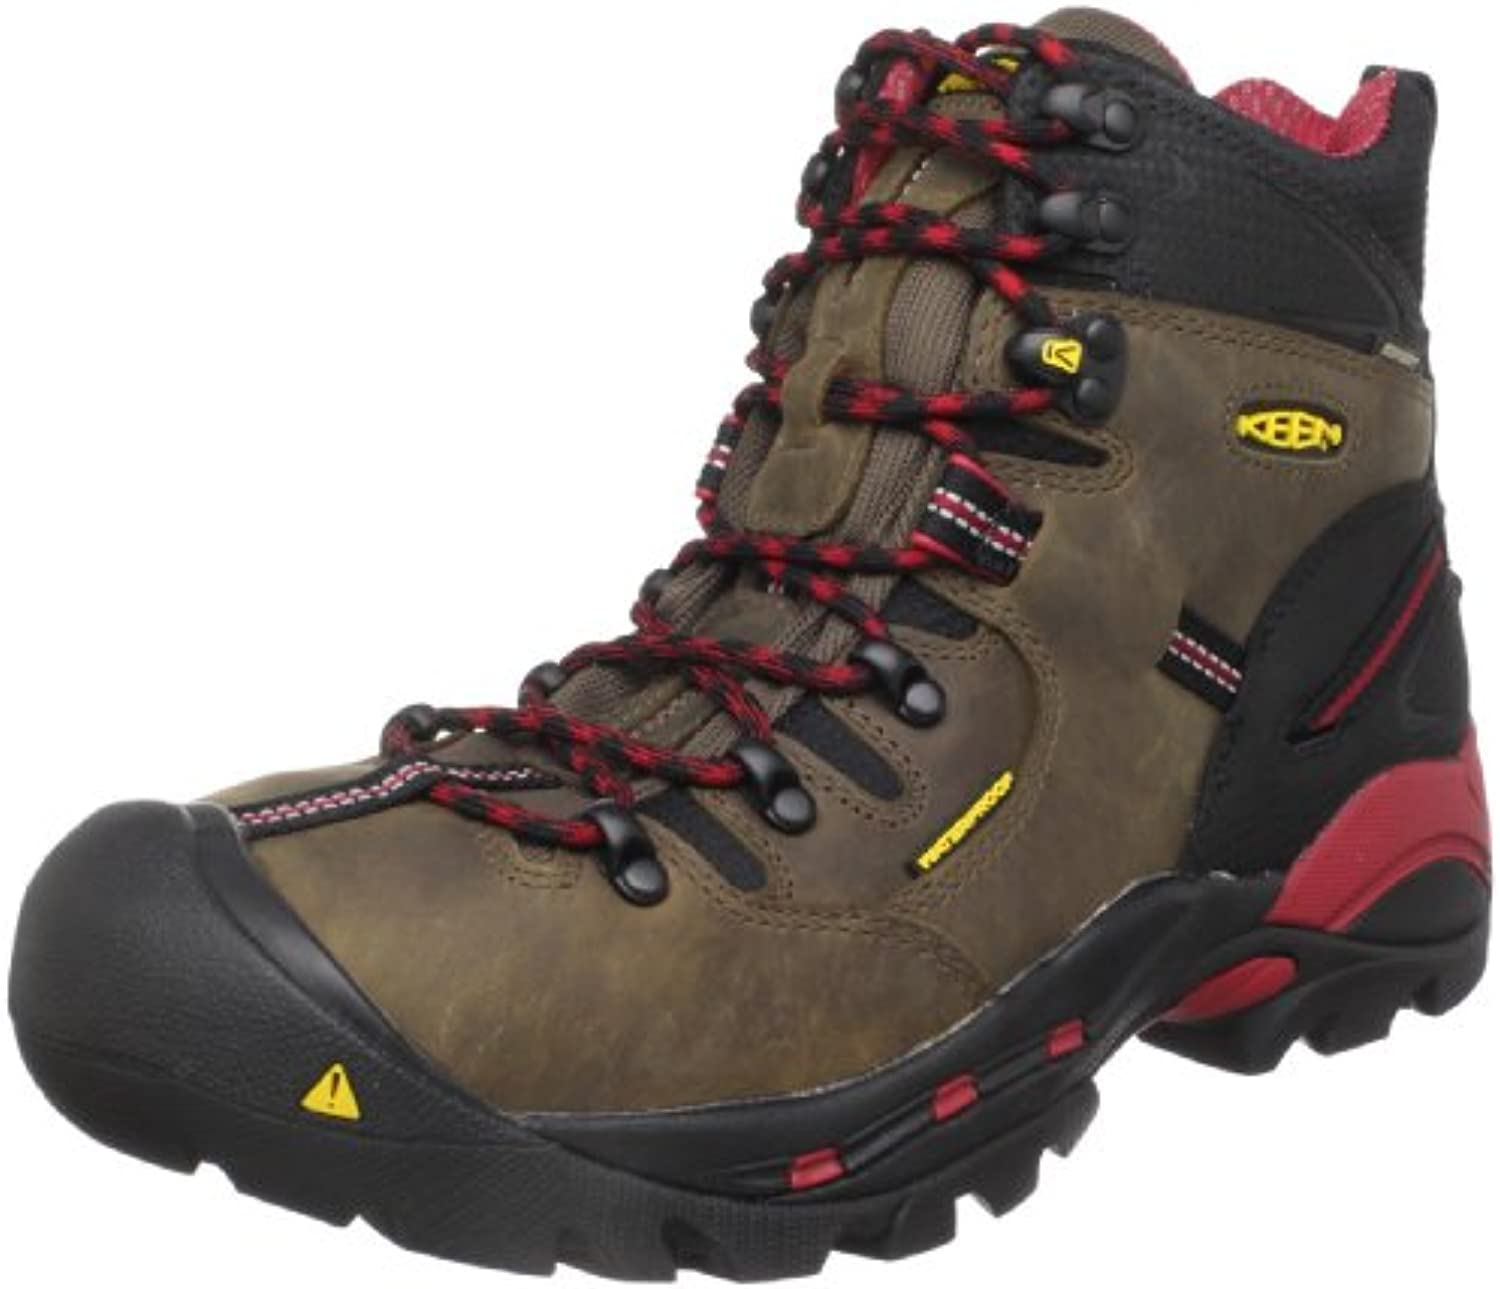 Keen Utility Men's Pittsburgh Steel Toe Work Boot Bison 10 D US